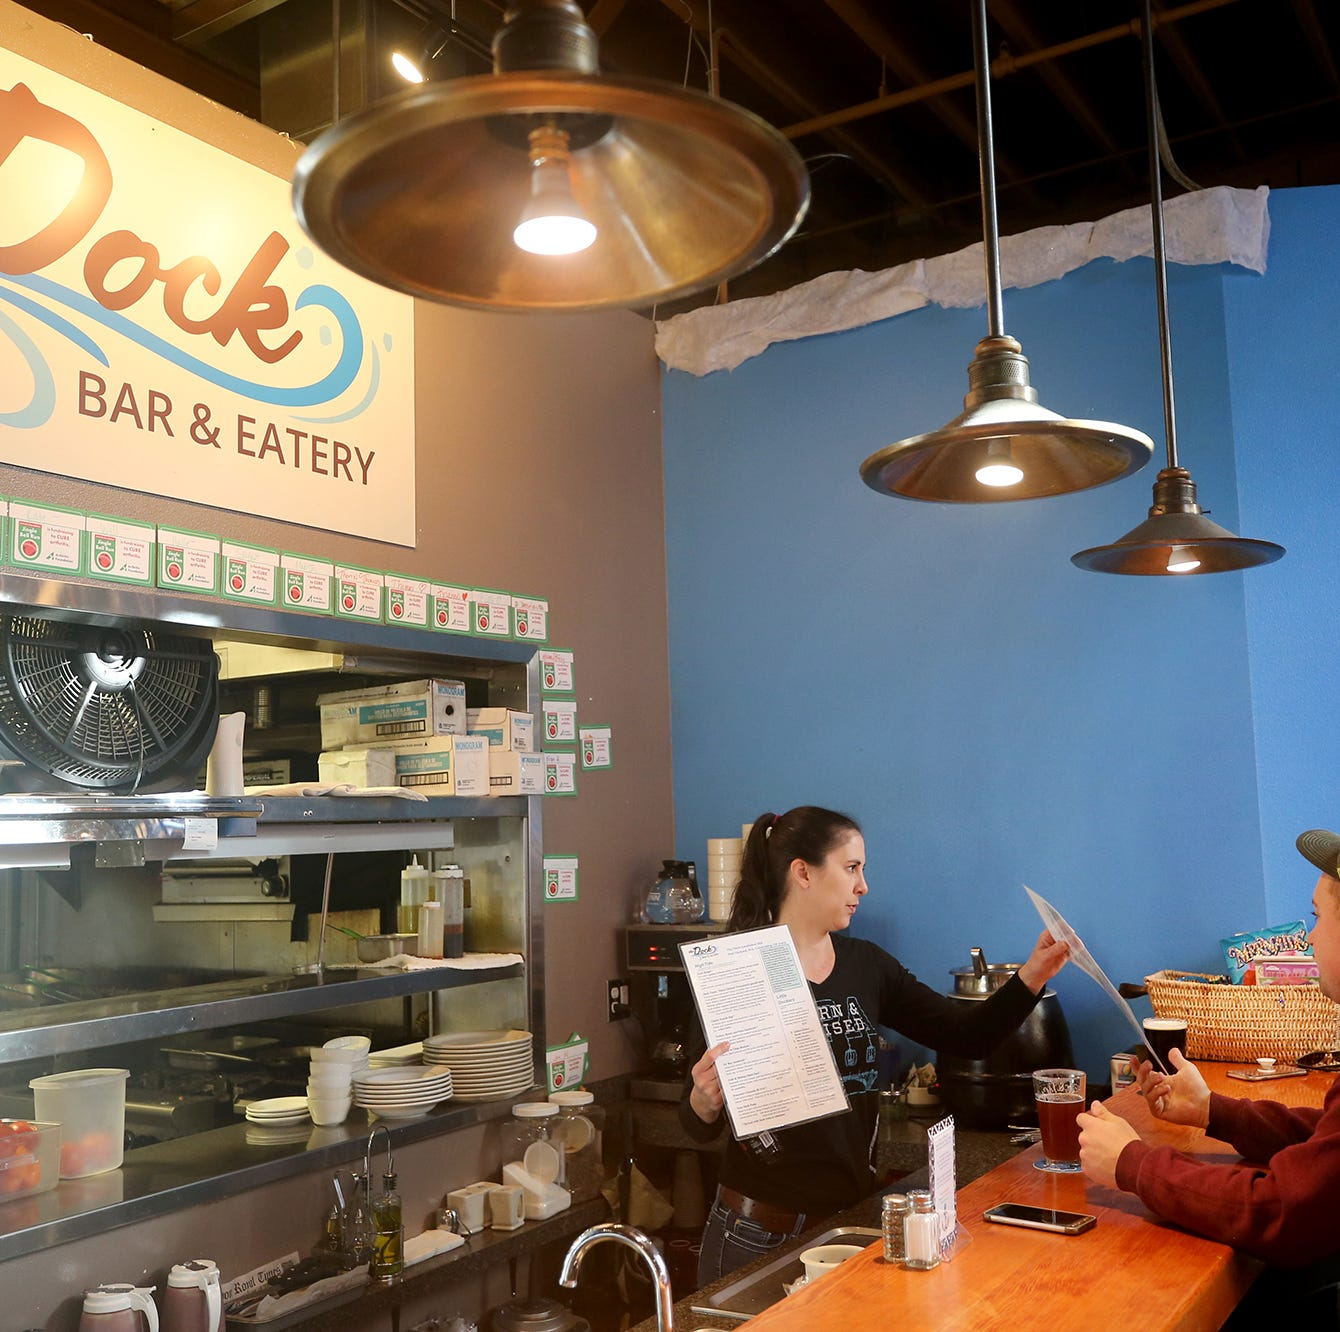 Manager Kate Huck takes the menus after customer orders at The Dock Bar & Eatery in the Port Orchard Market.